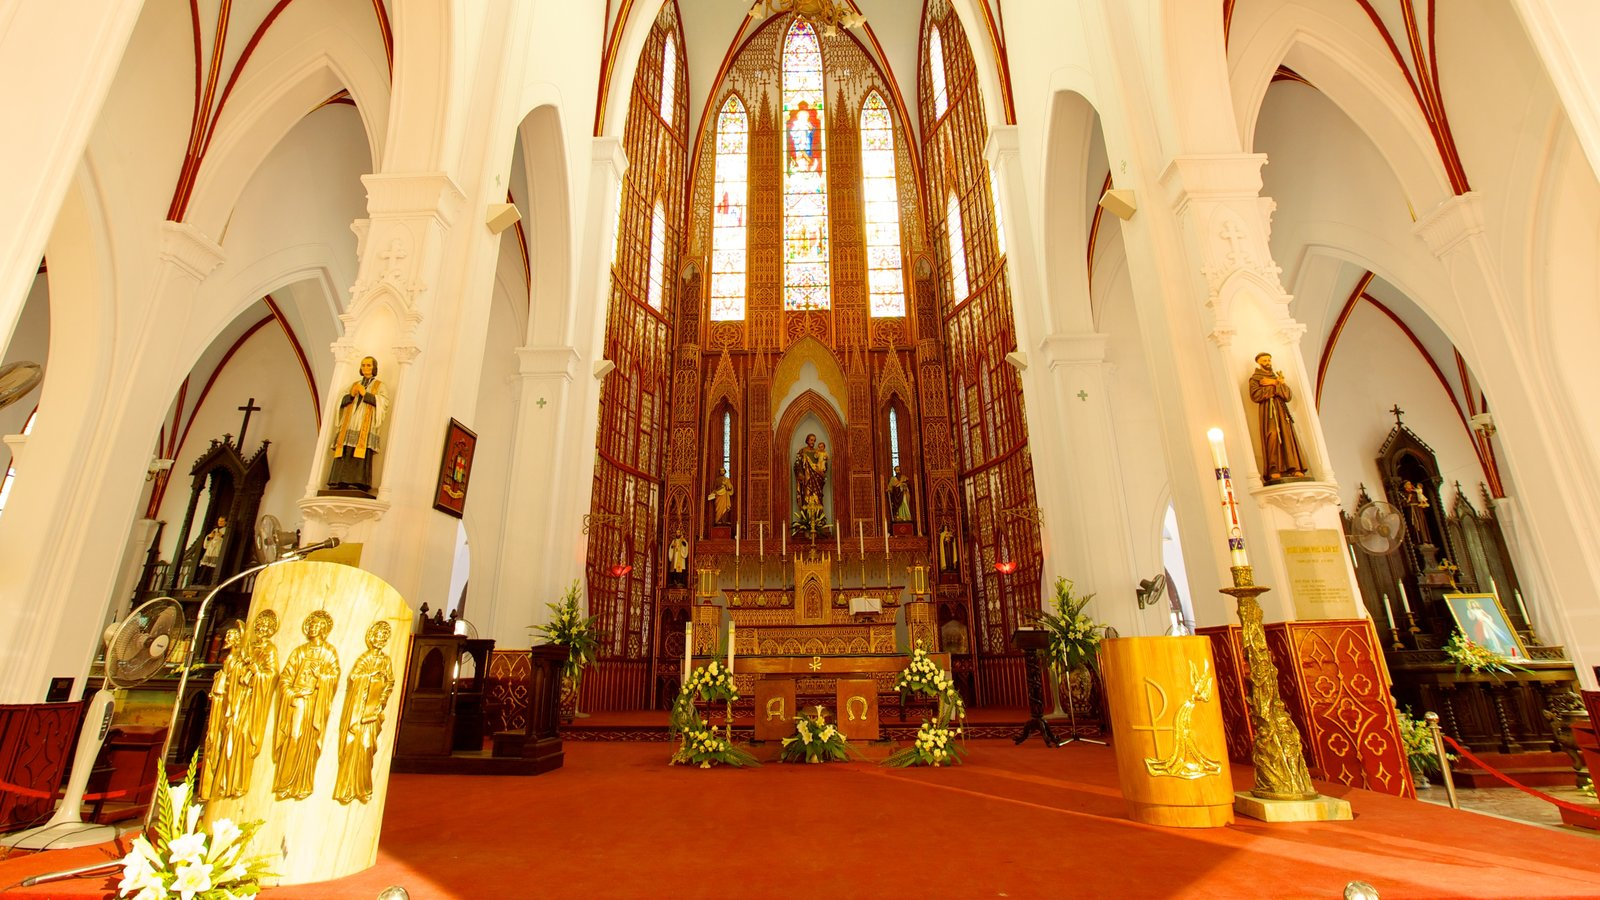 St. Joseph Cathedral featuring interior views, a church or cathedral and religious elements